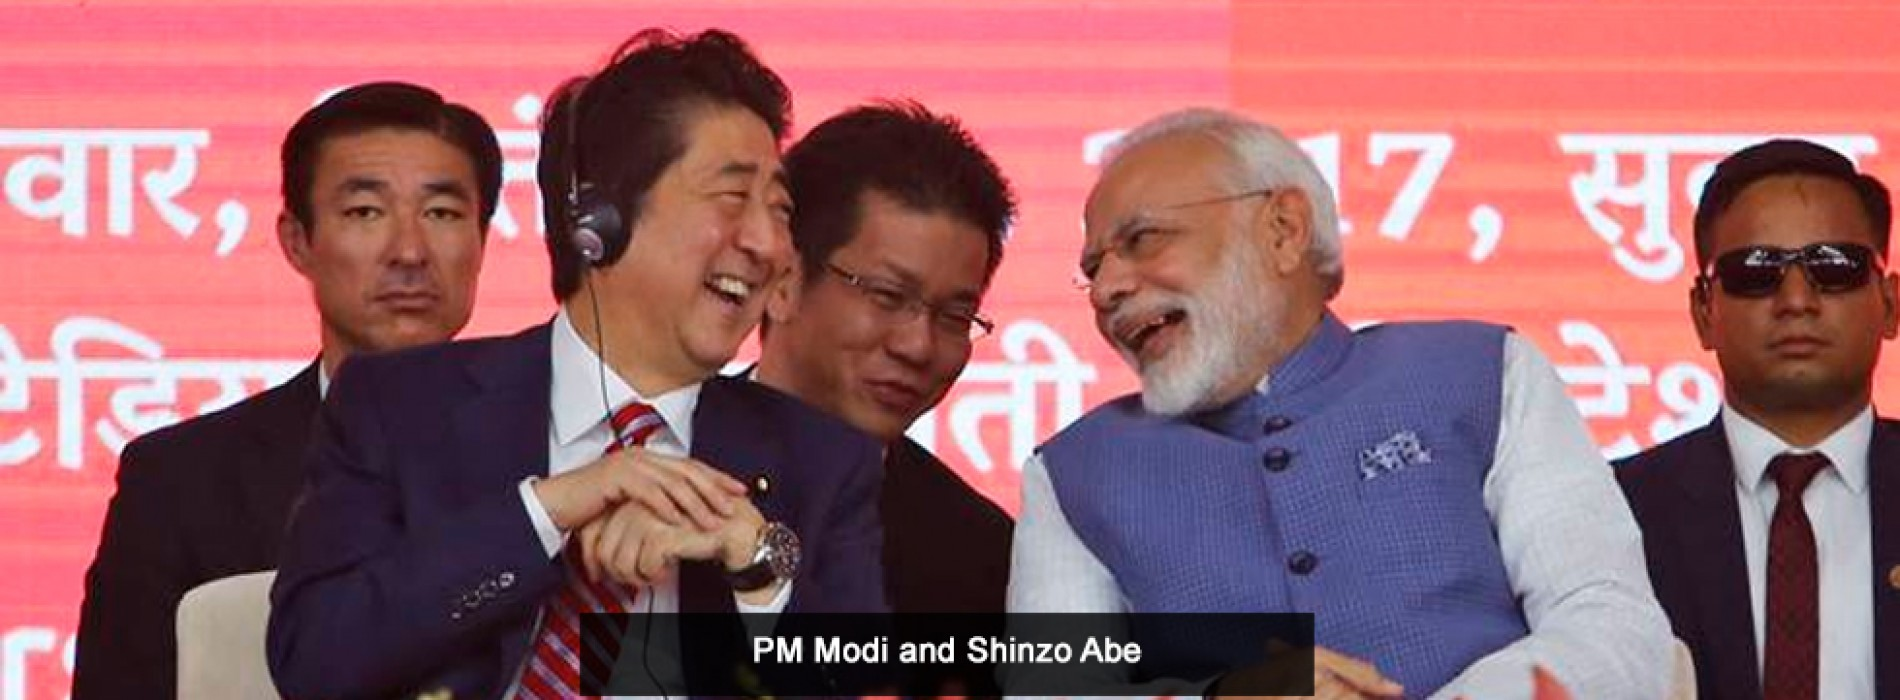 India and Japan ink 15 agreements including Aviation, Trade and Science